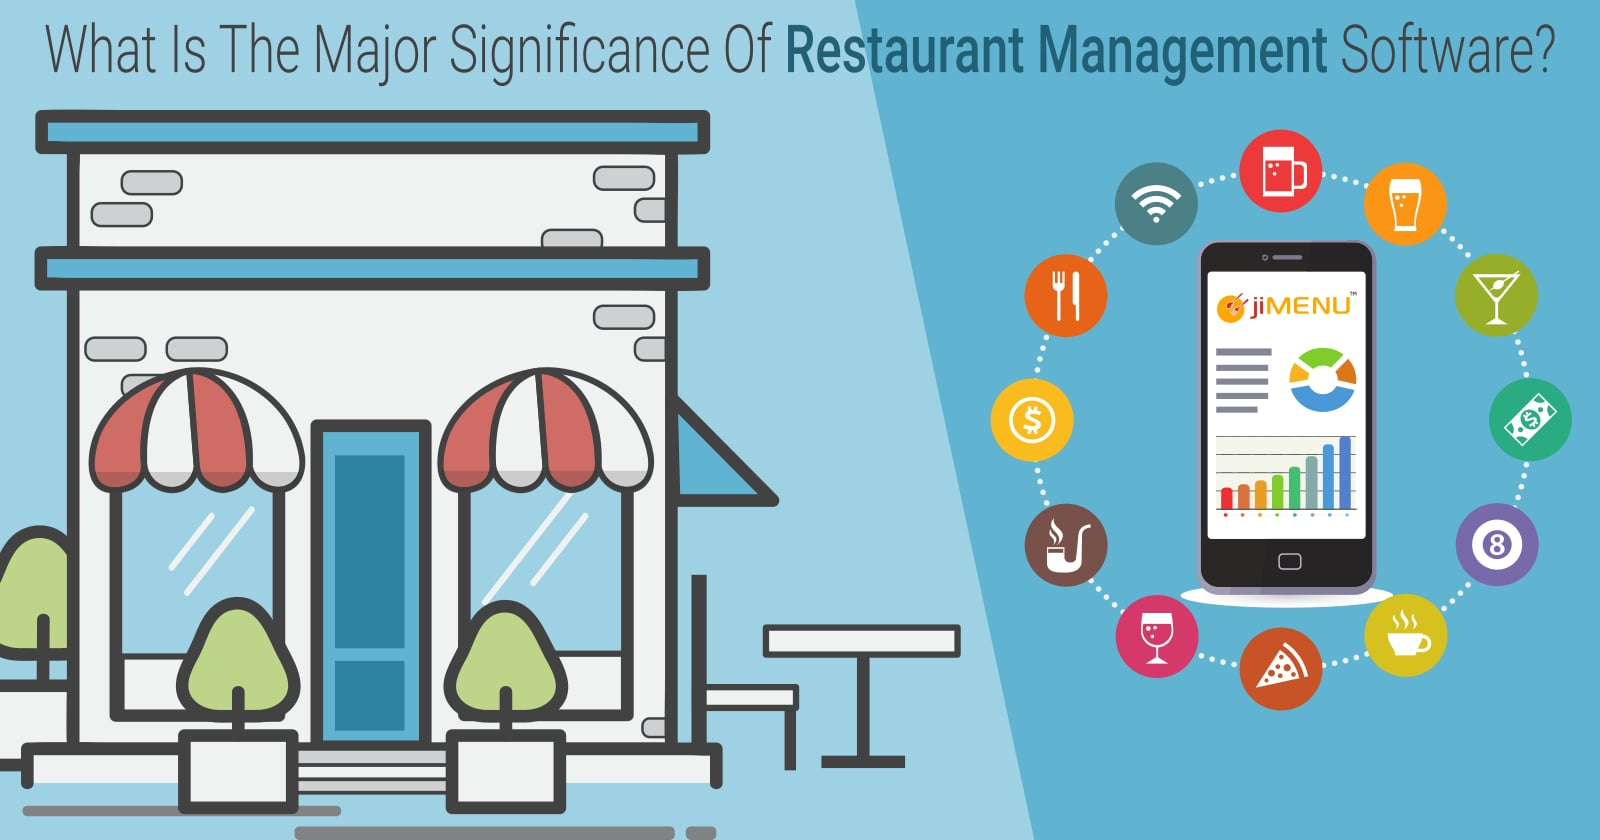 What Is The Major Significance Of Restaurant Management Software?